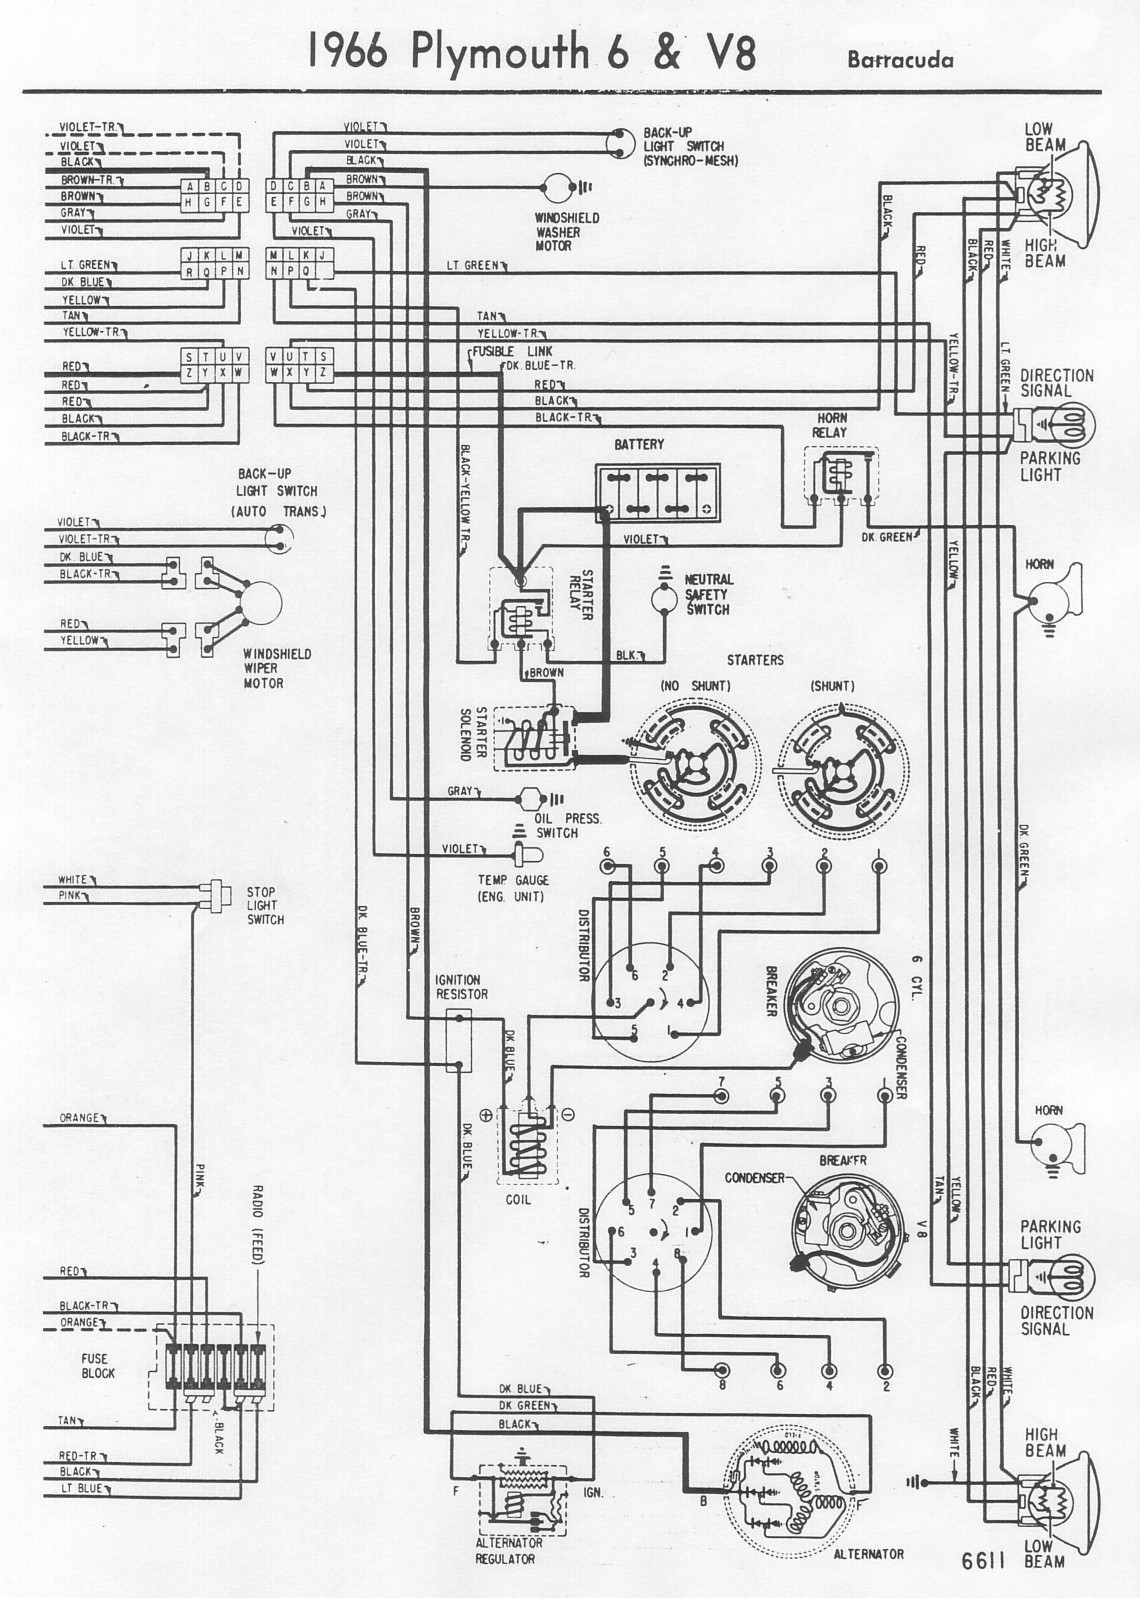 1969 barracuda wiring diagram electrical wiring diagrams rh cytrus co 1967 barracuda wiring diagram Basic Headlight Wiring Diagram